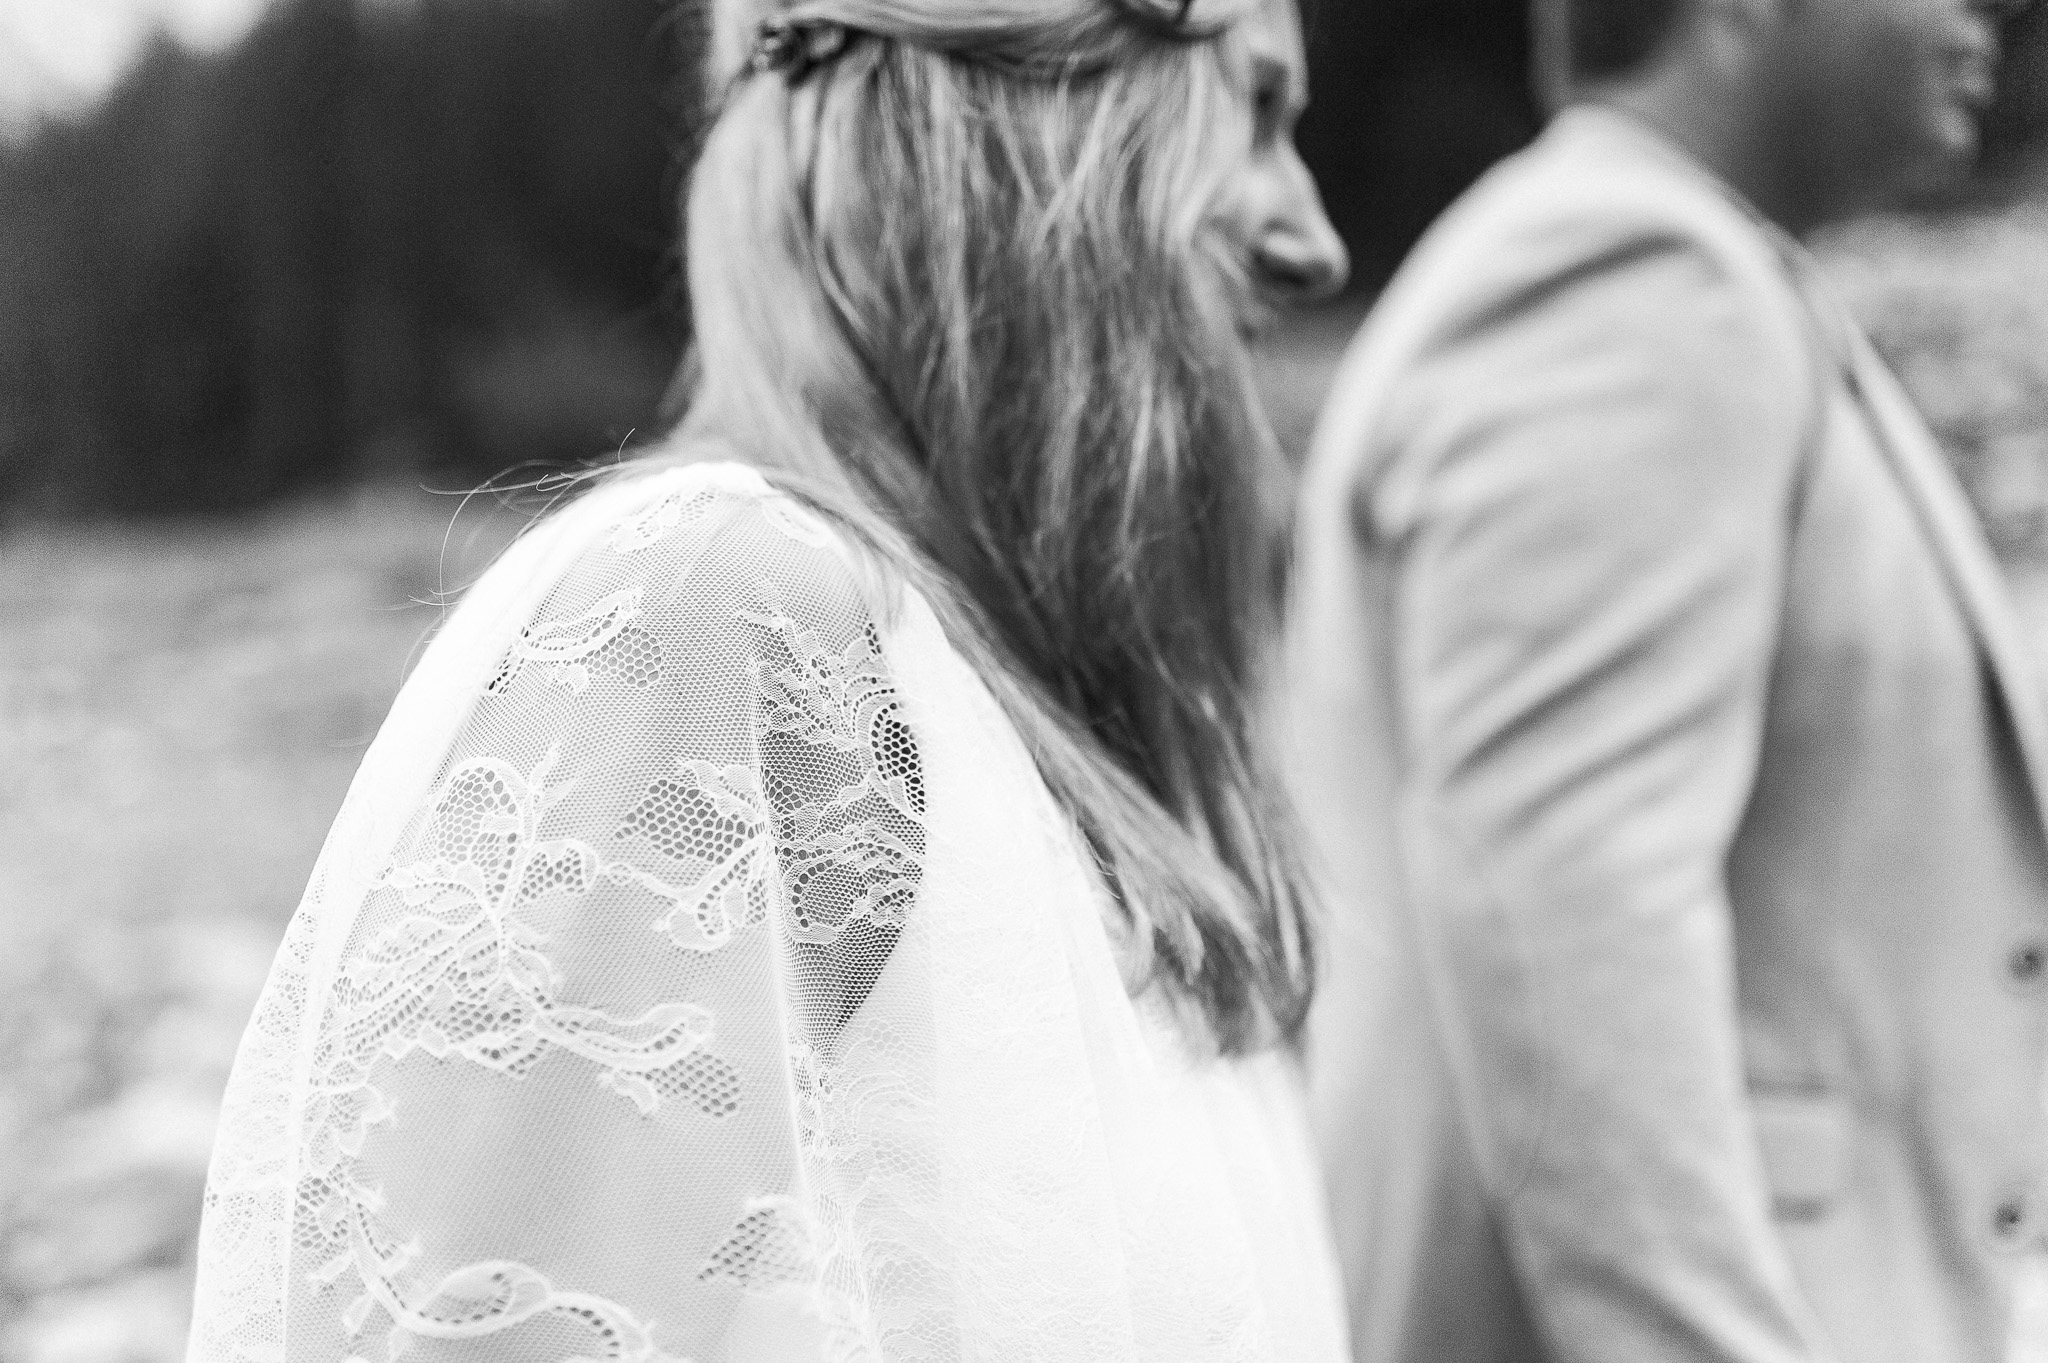 k&m-weddingphotography-37.jpg